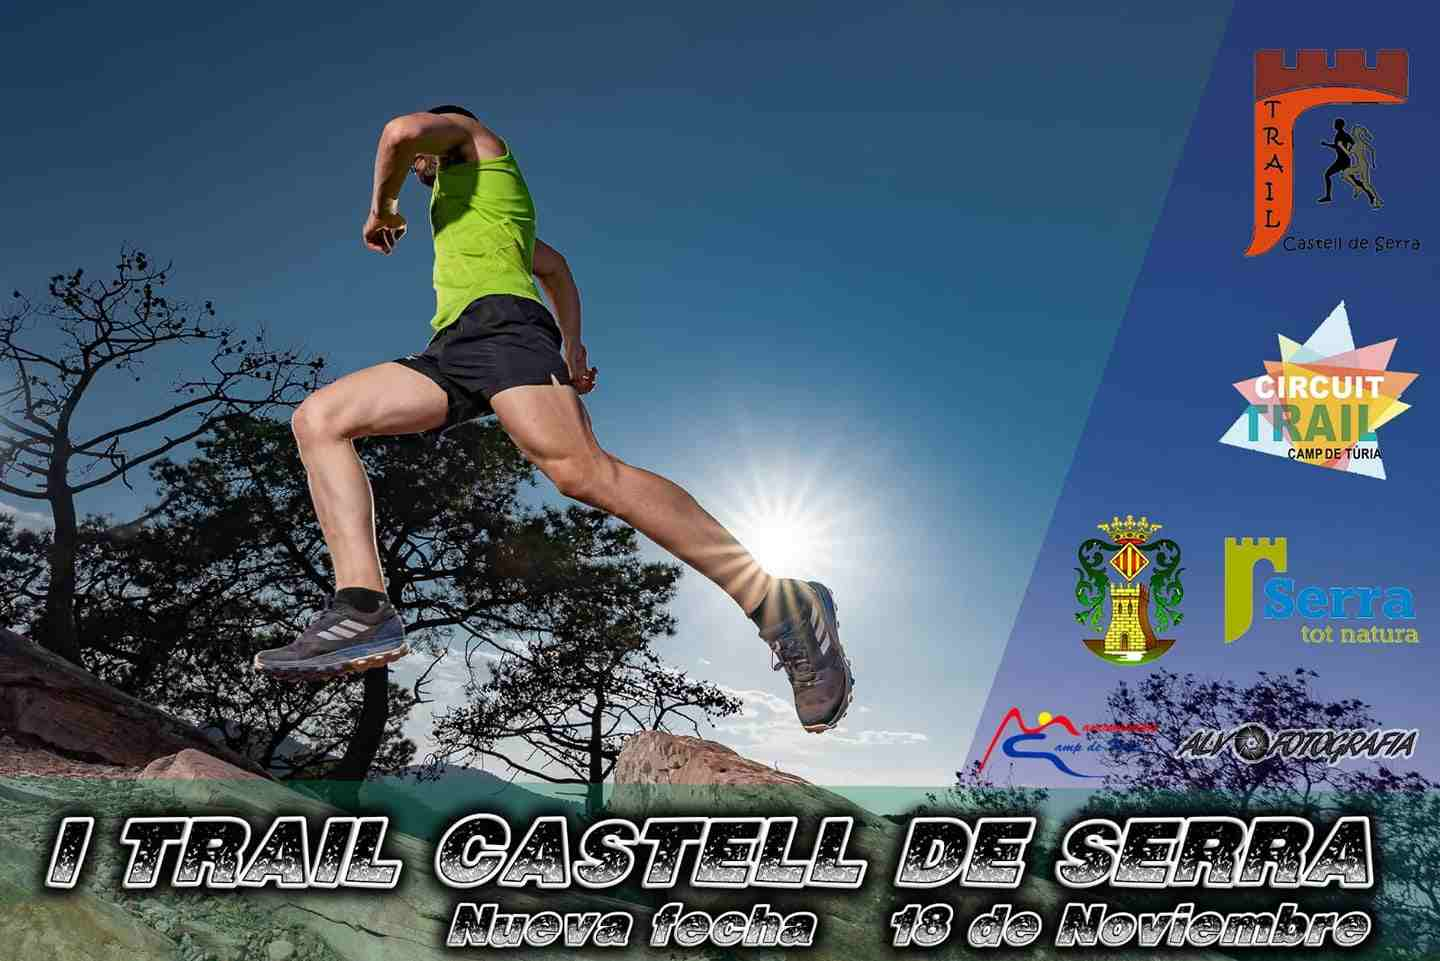 Serra will celebrate on November 18 the I Trail Castell de Serra